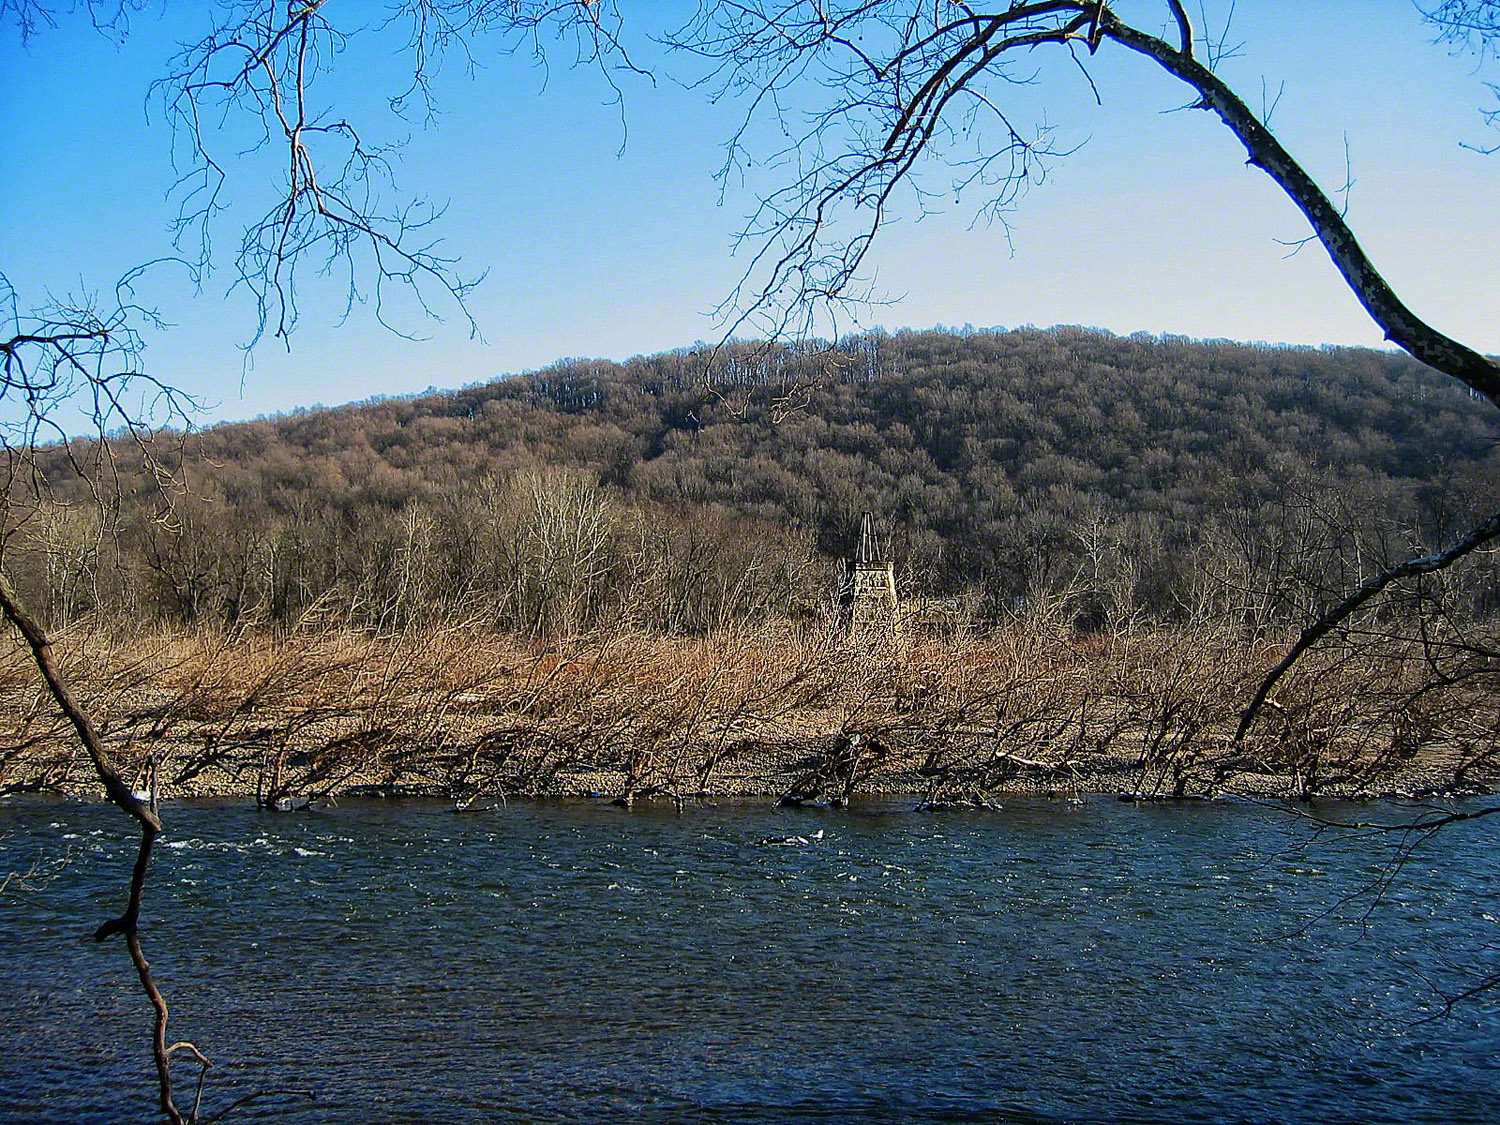 On this current swept island stands one structure defiant of the powerful Delaware River .